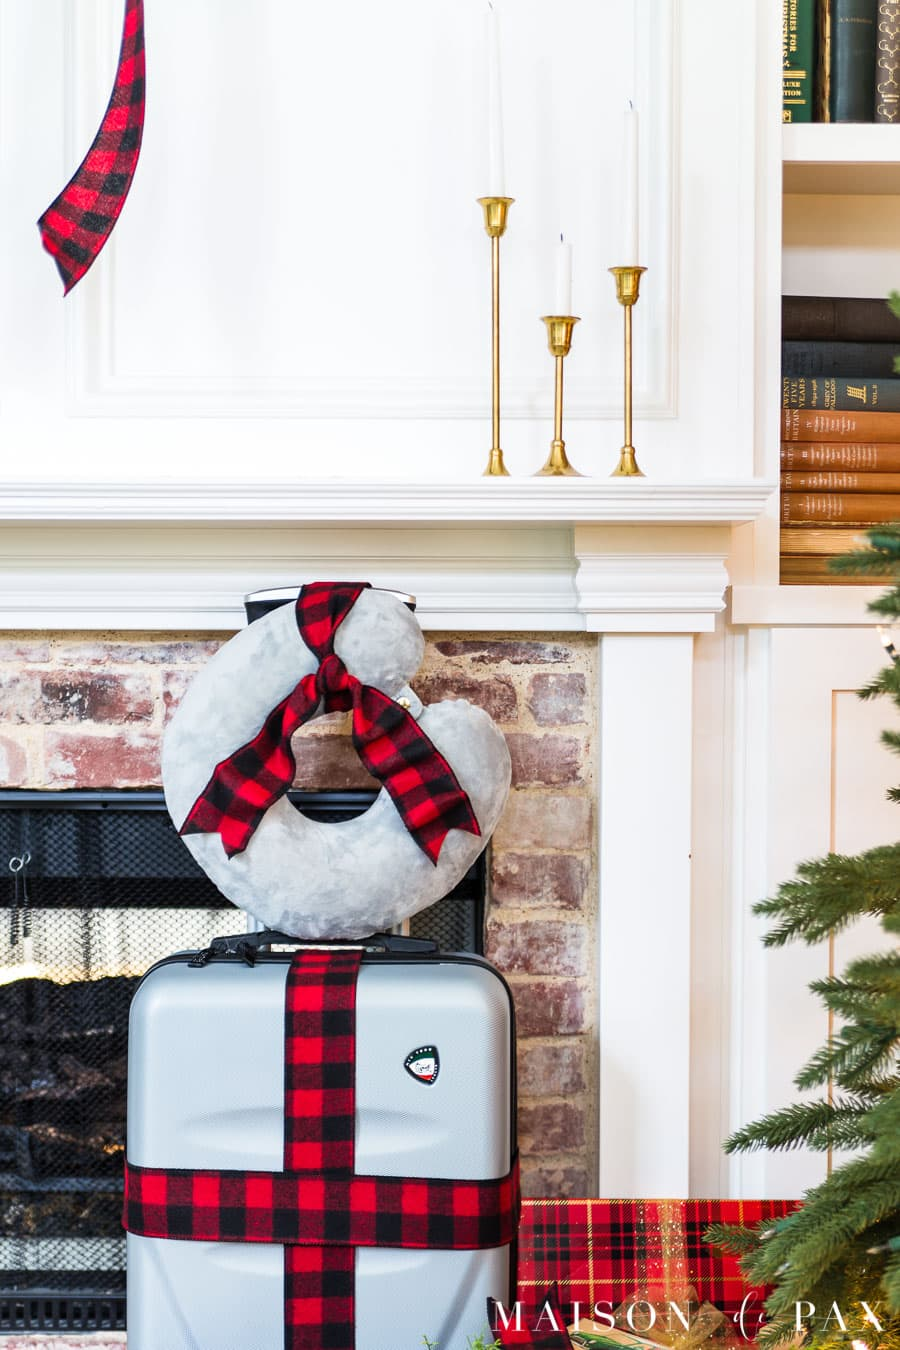 suitcase and neck pillow gift idea | Maison de Pax